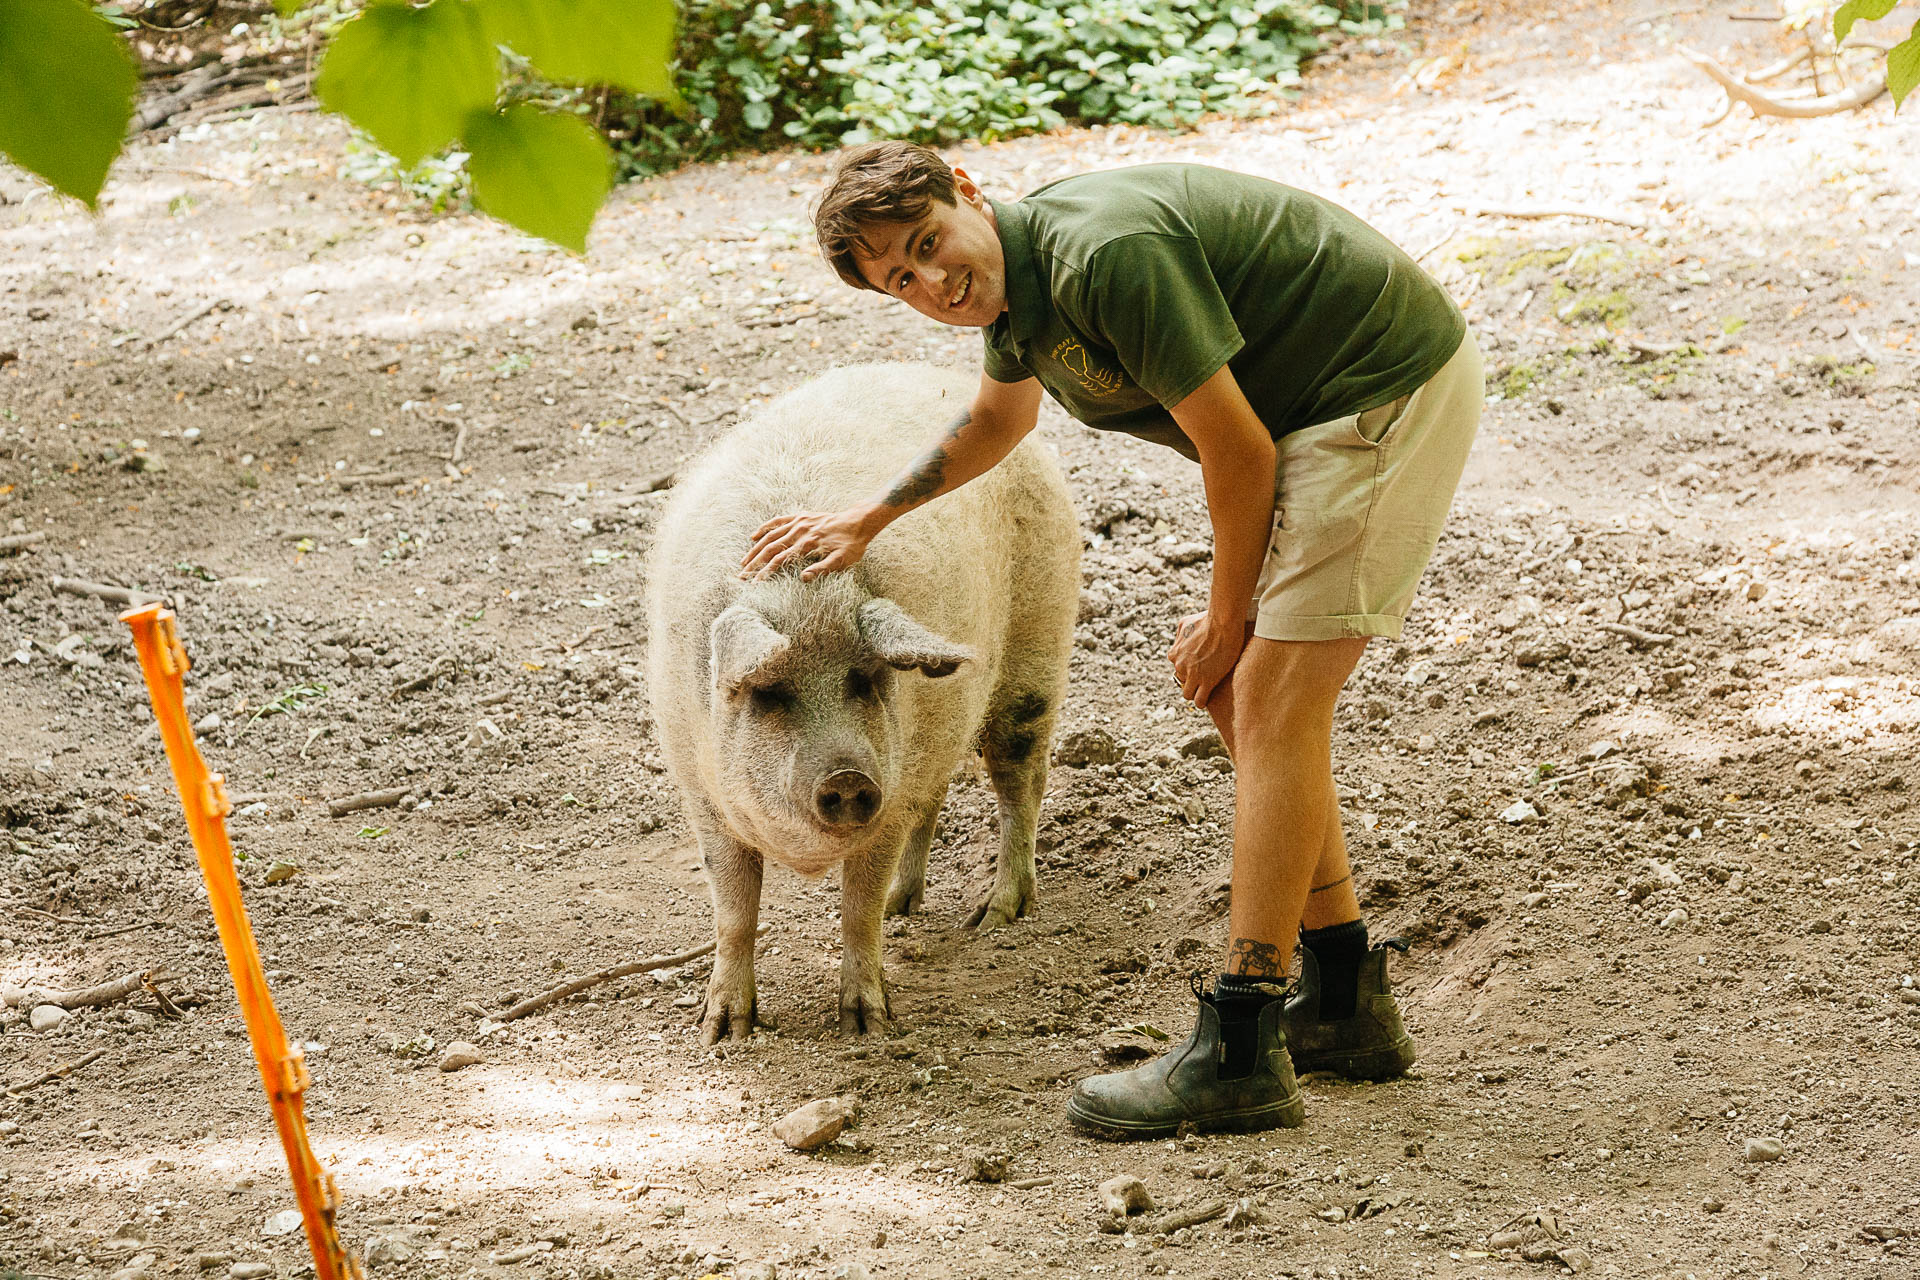 Dan formed a strong bond with the Pigs who helped to clear land on Steps Bank